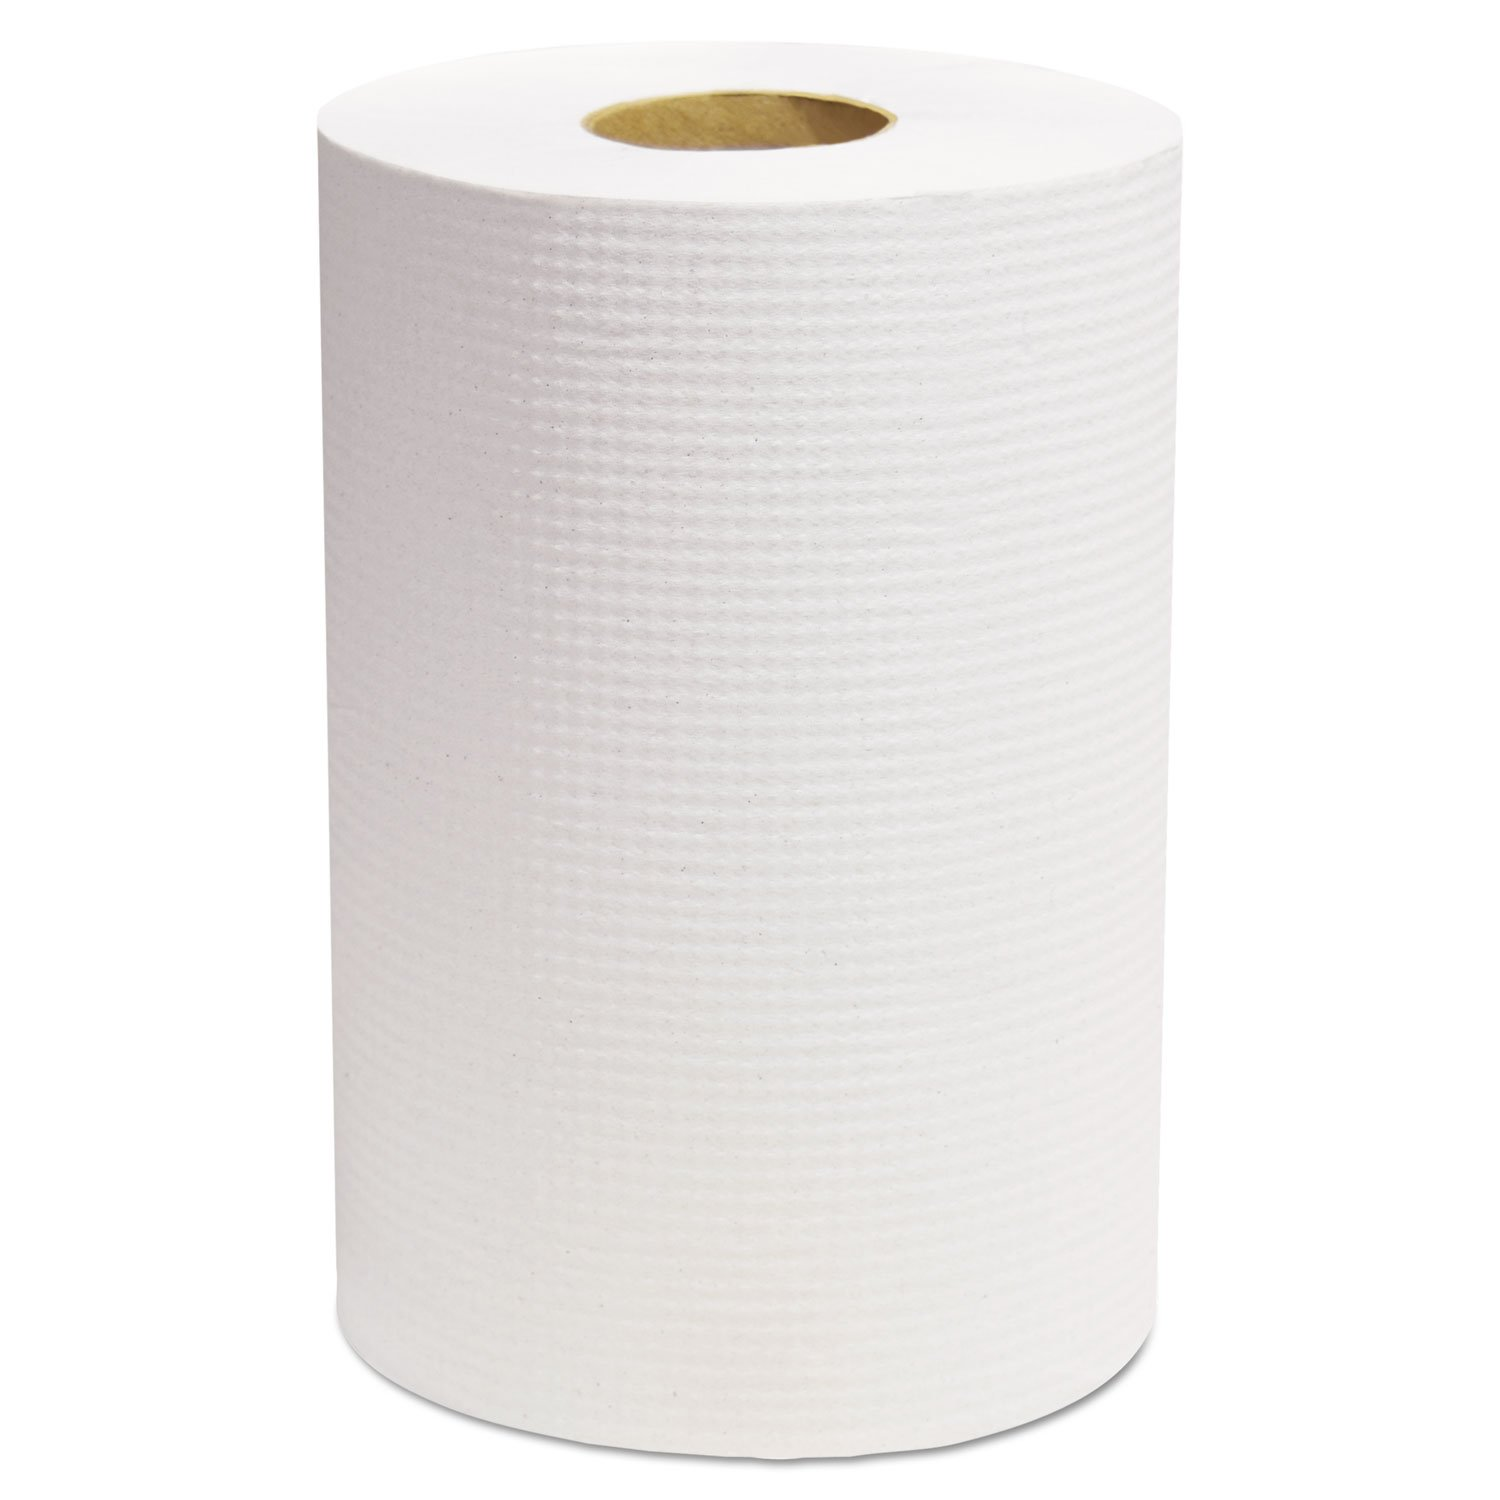 Cascades 1765 Decor Hardwound Roll Towels, 7 7/8'' x 350', White (Pack of 12) by Cascade